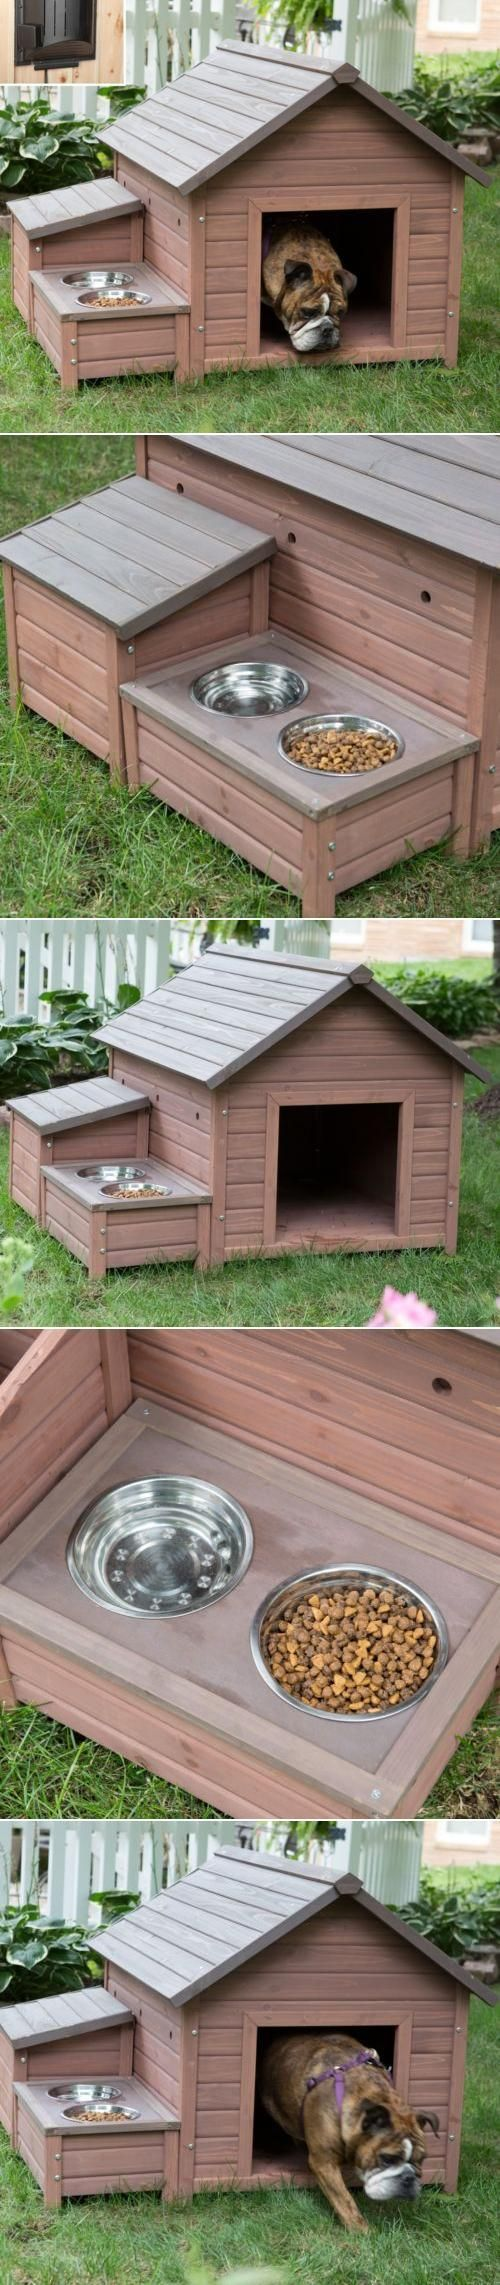 The ultimate multi-tasking dog house features a small cubby for storing supplies, a built-in food tray with metal bowls, and plenty of weatherproof details. When temperatures drop, the built-in heater automatically turns on to keep pets warm. Its energy-e